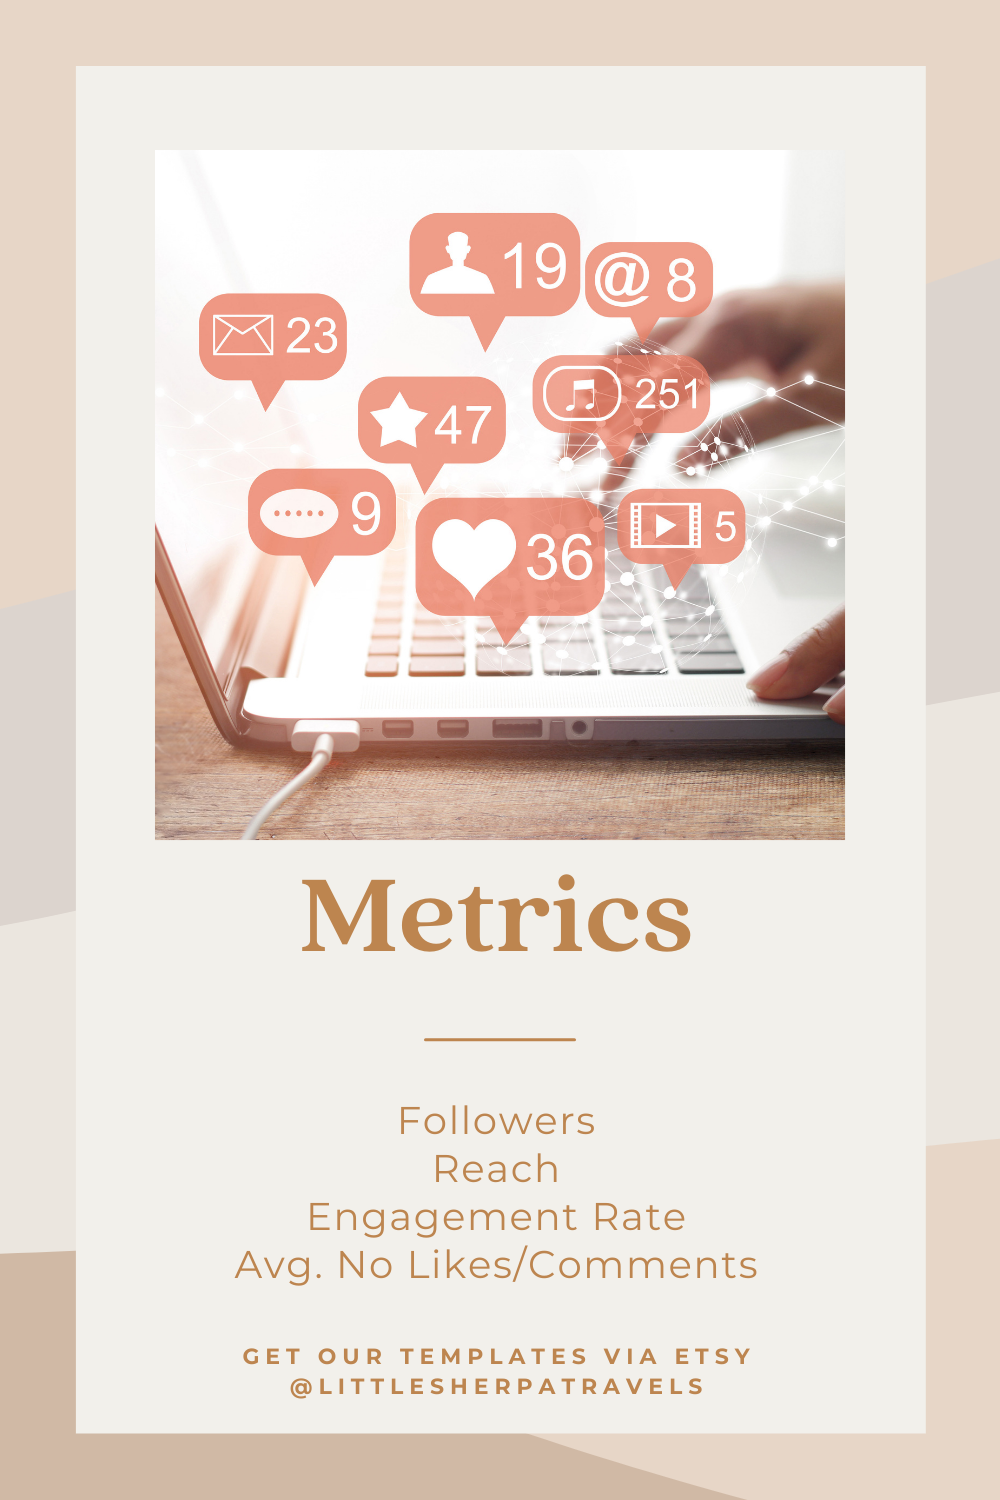 Metrics to include in your Media Kit